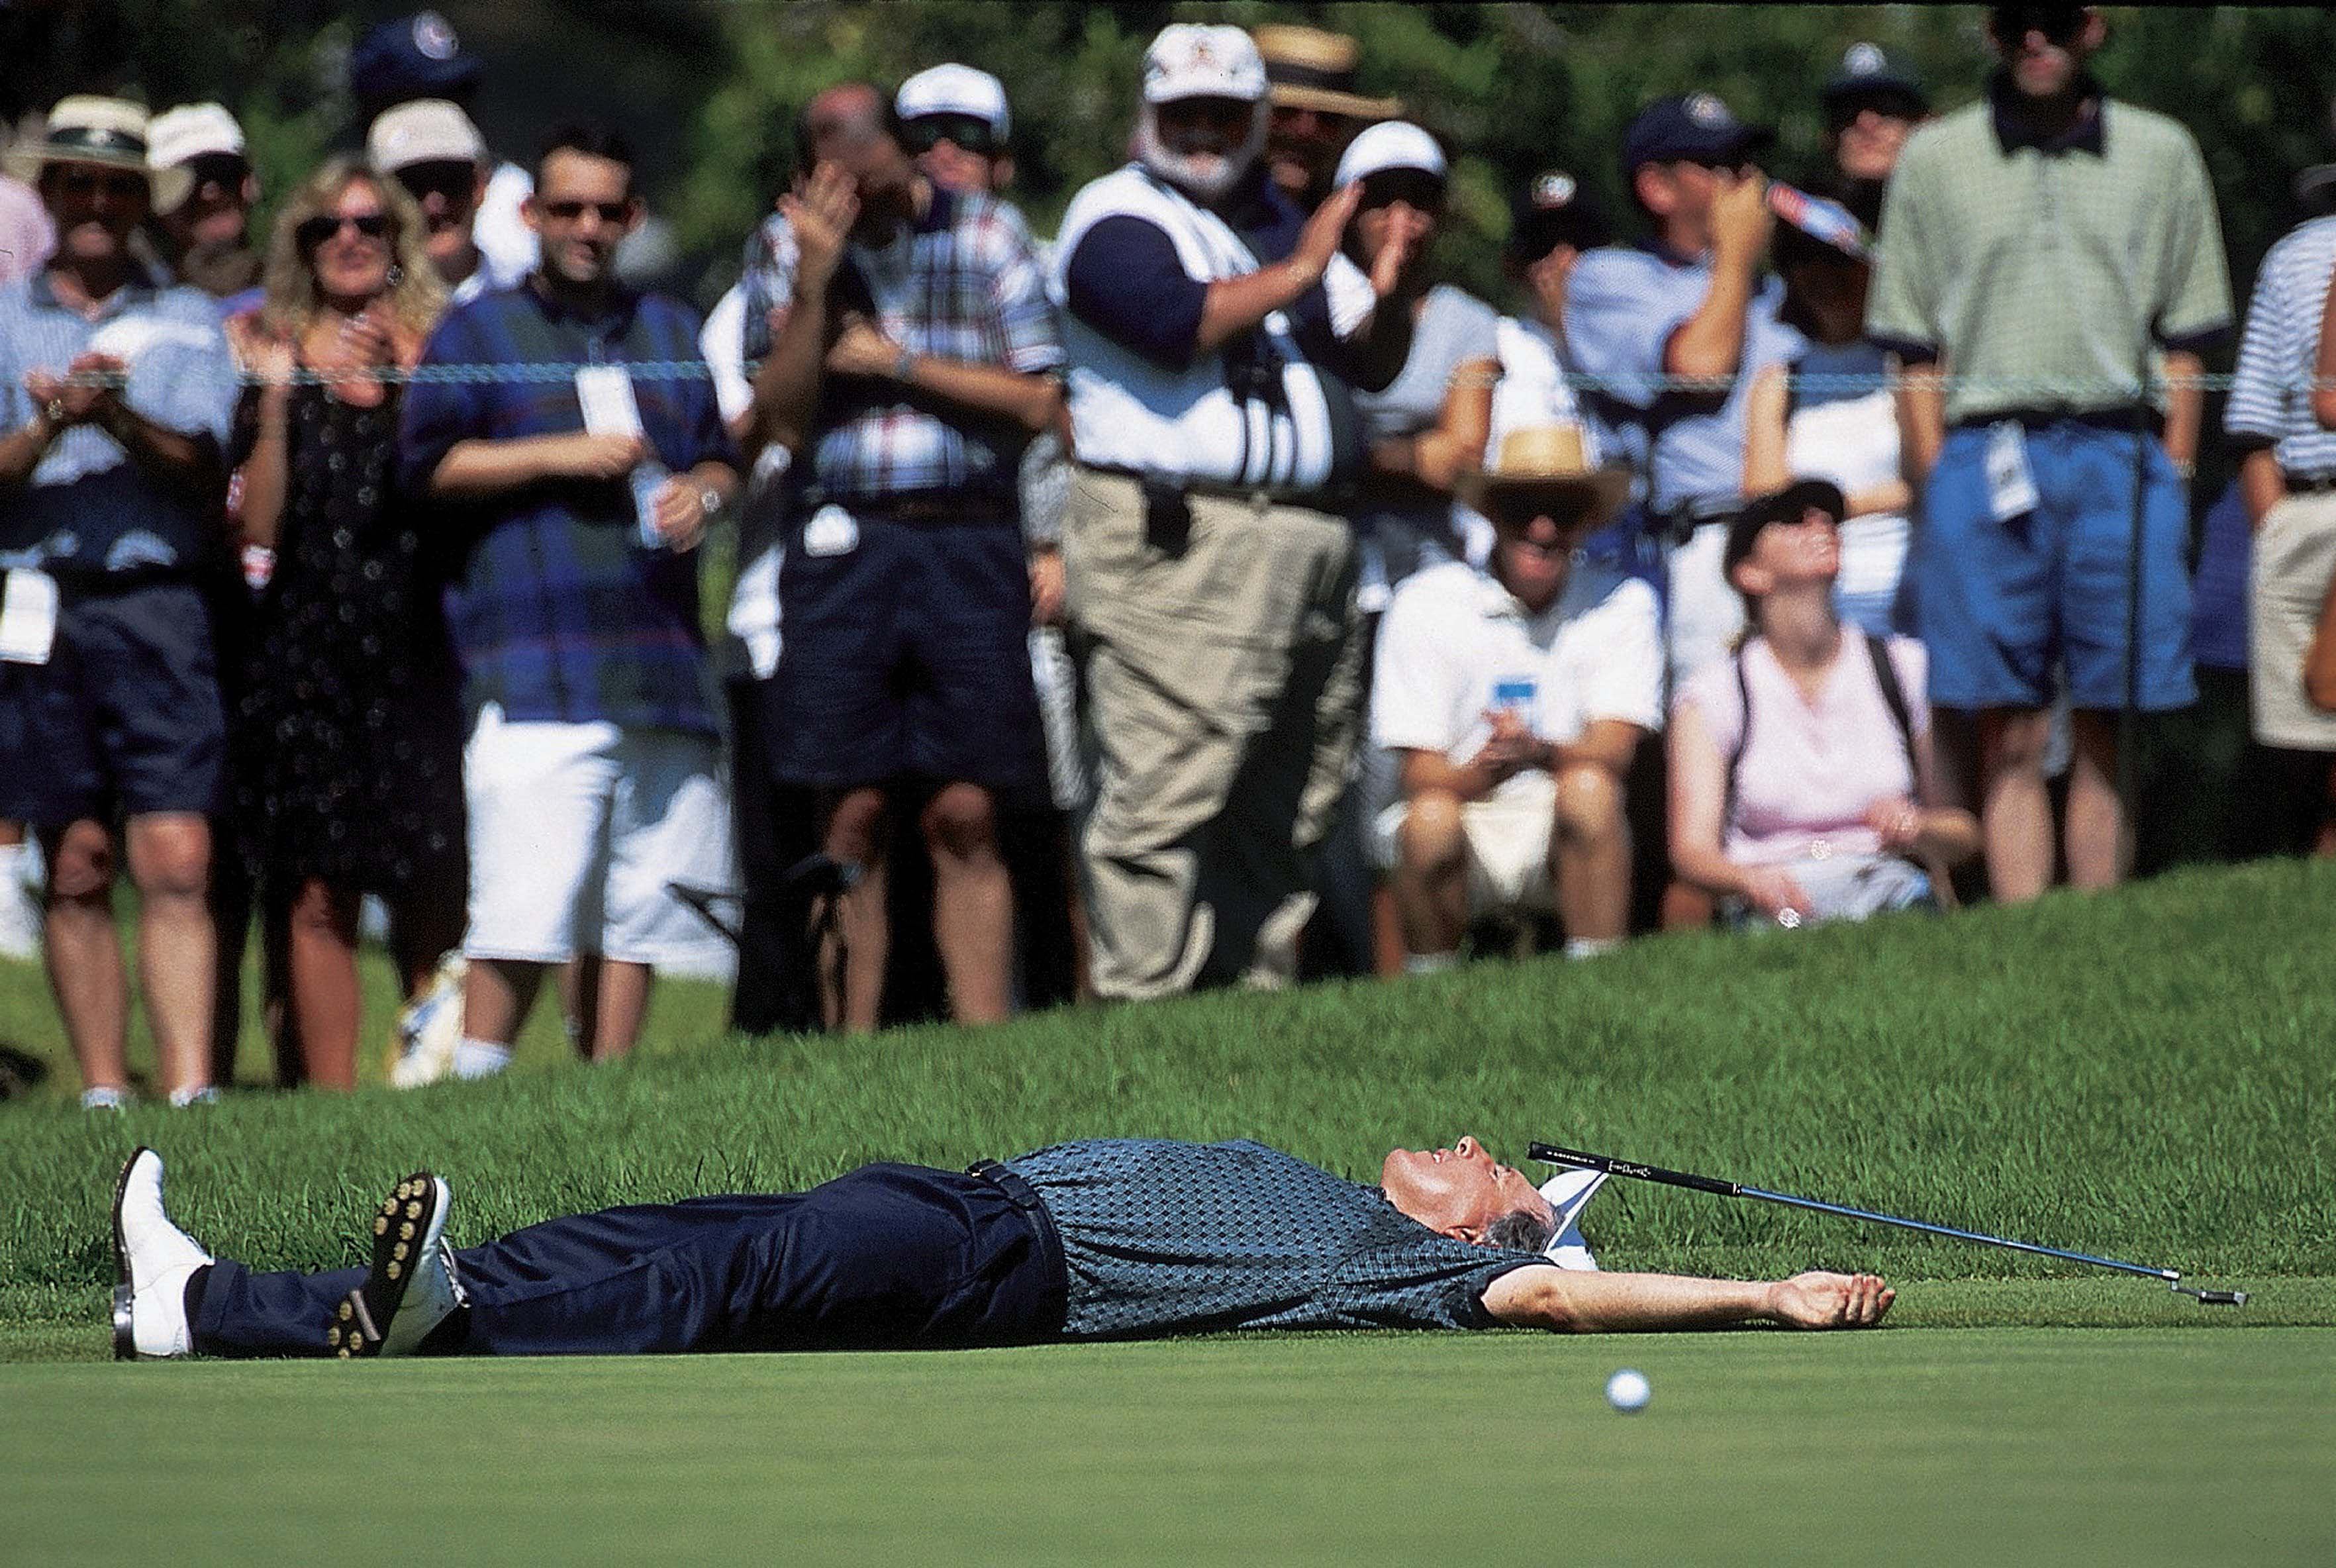 ... even though he couldn't believe this putt didn't go in